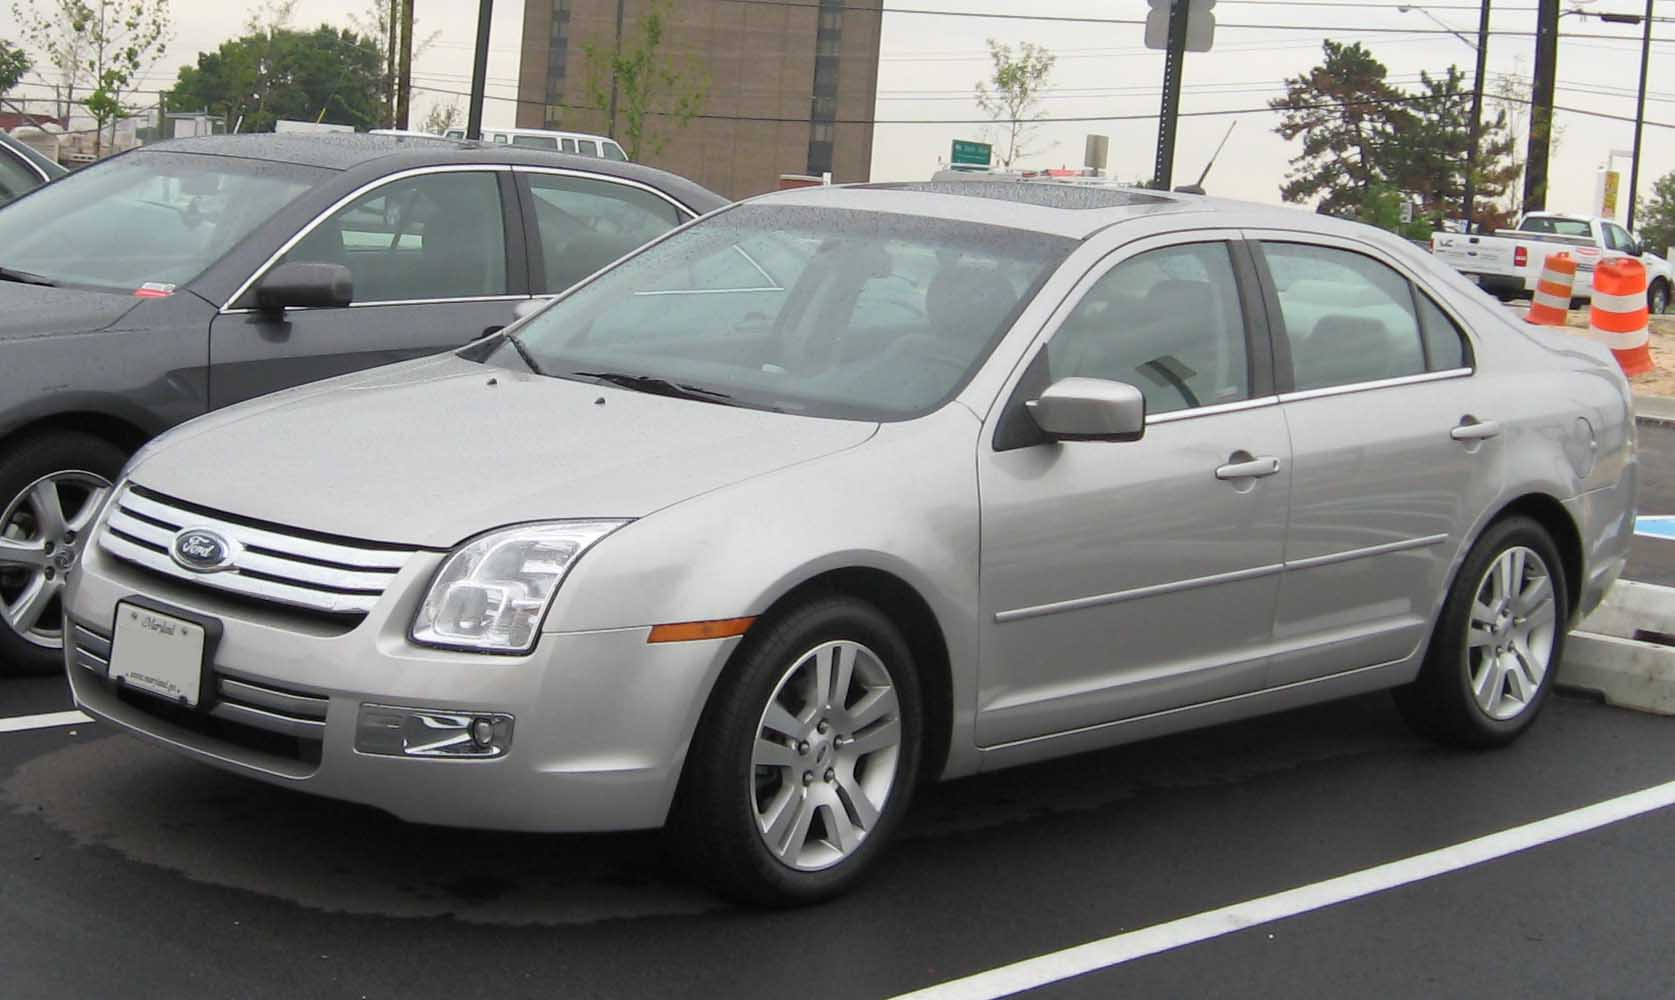 Ford Fusion 2008 #8